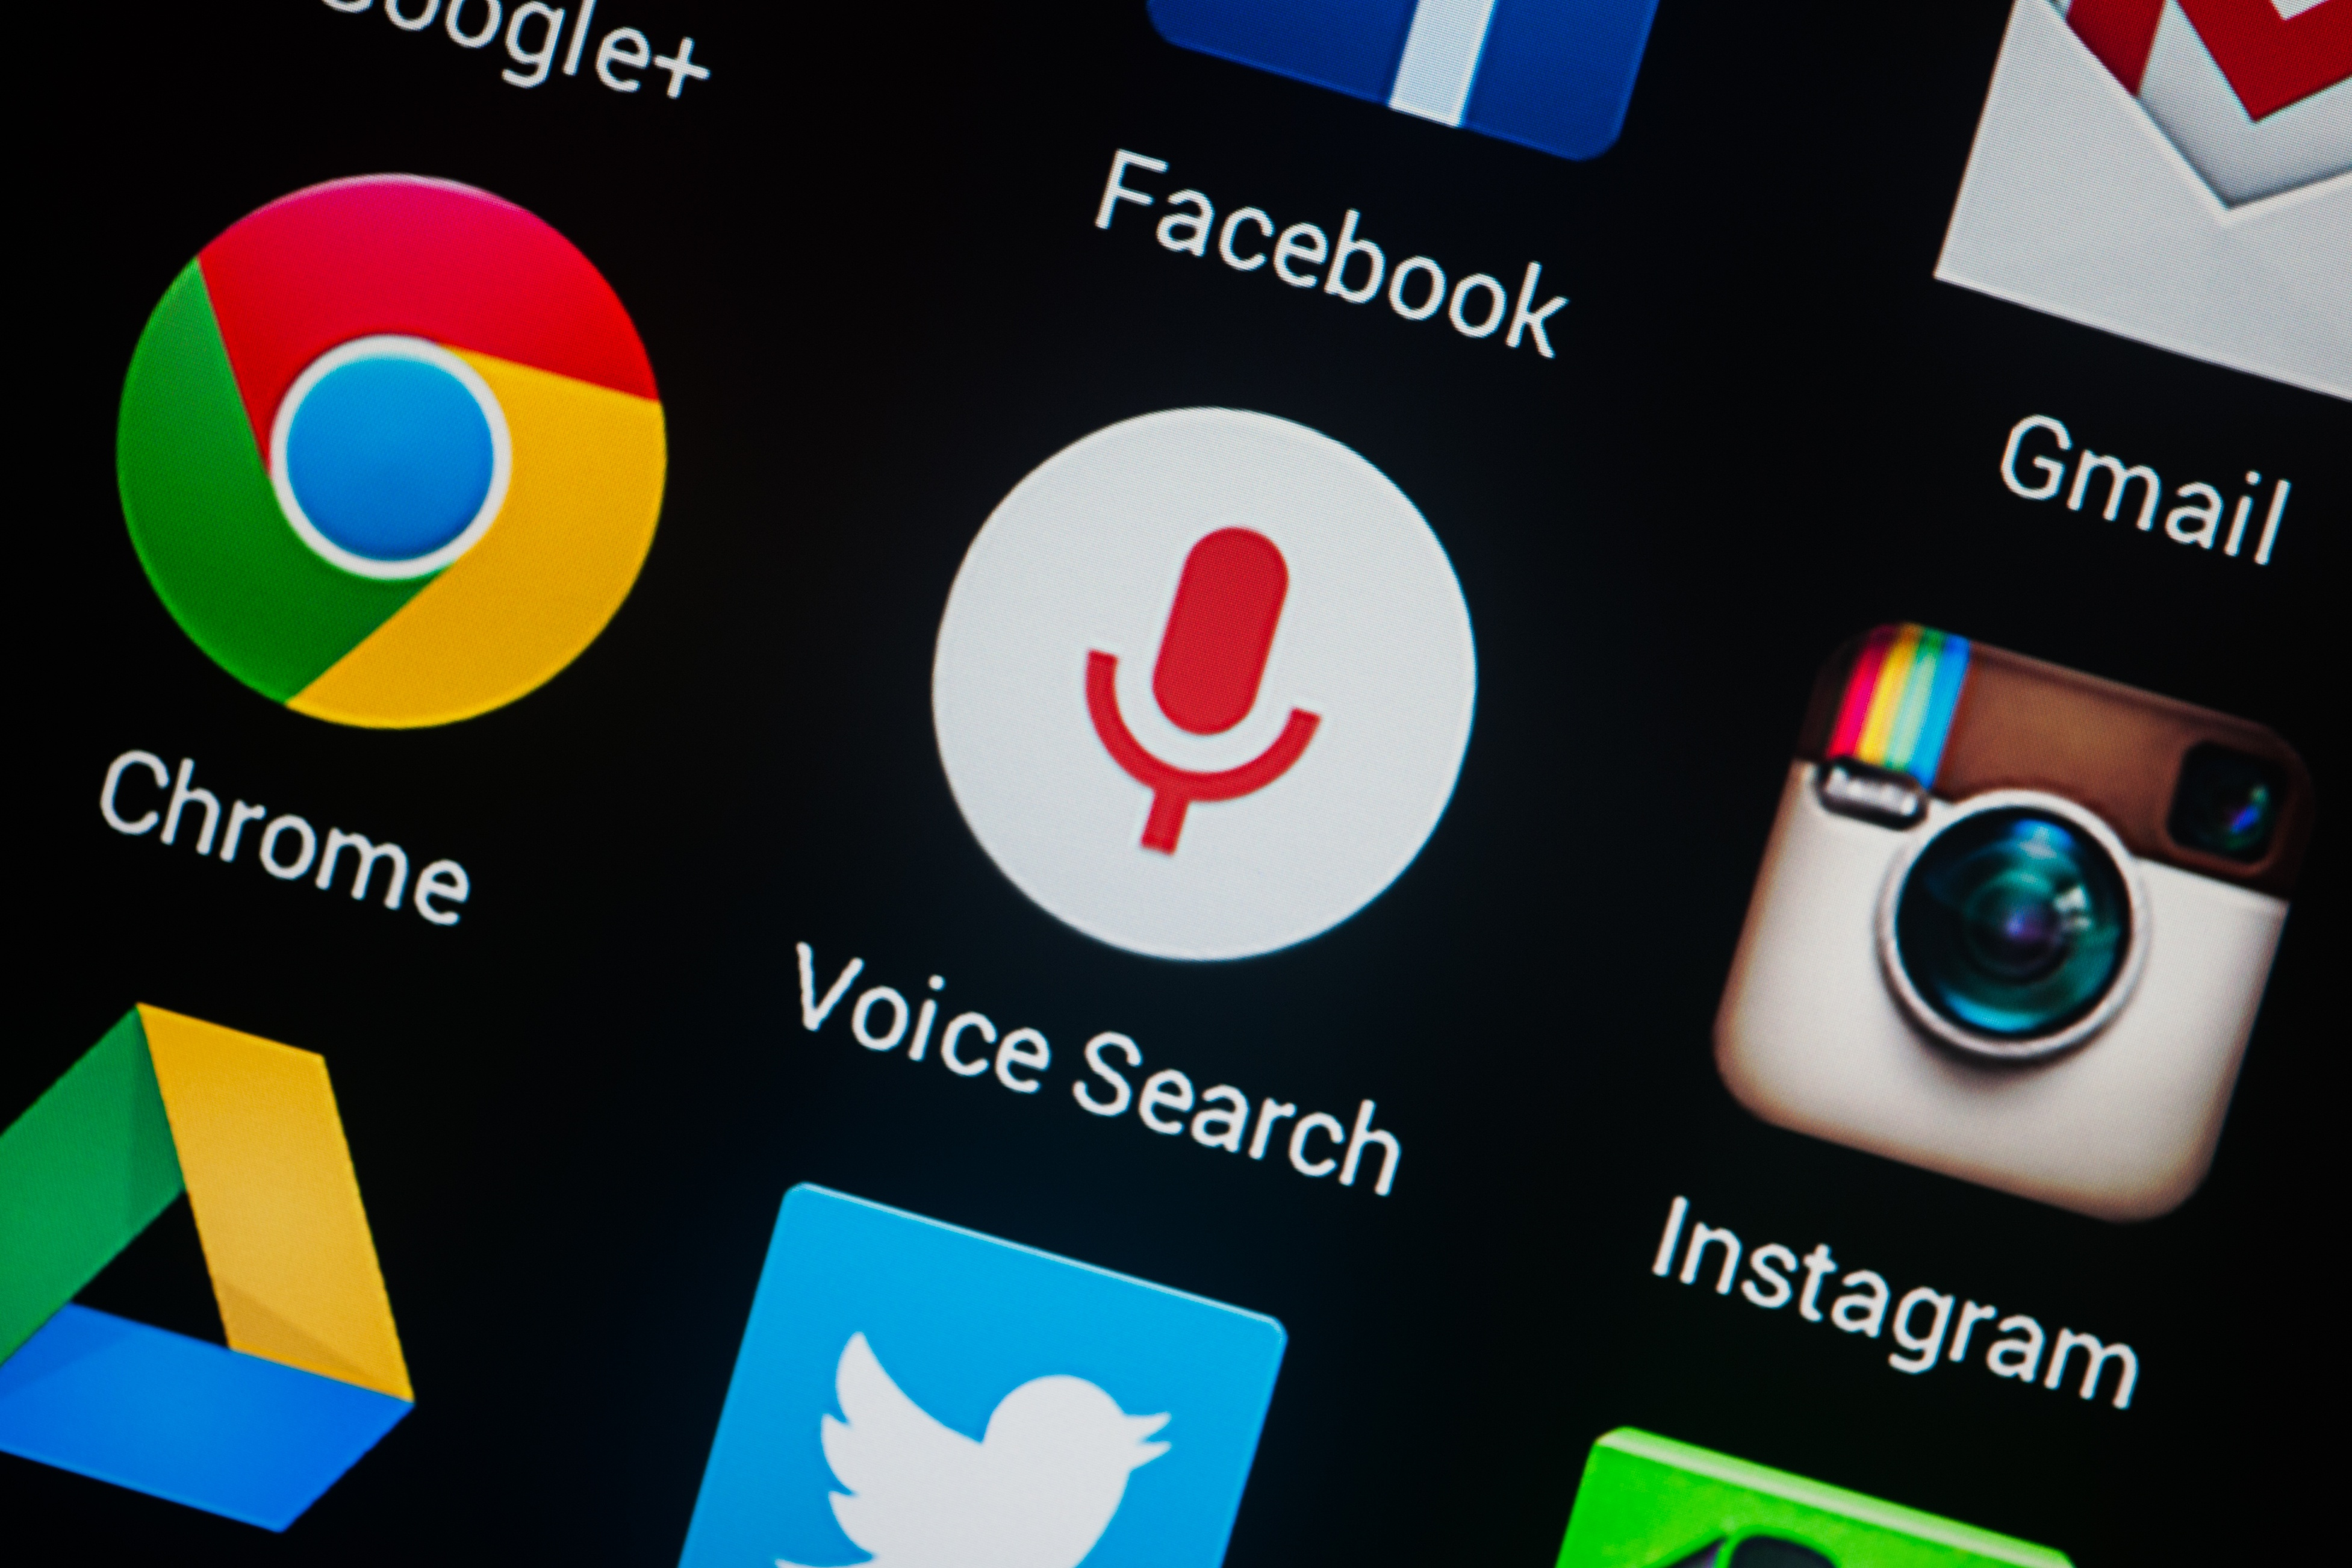 3 ways voice search can benefit your law firm